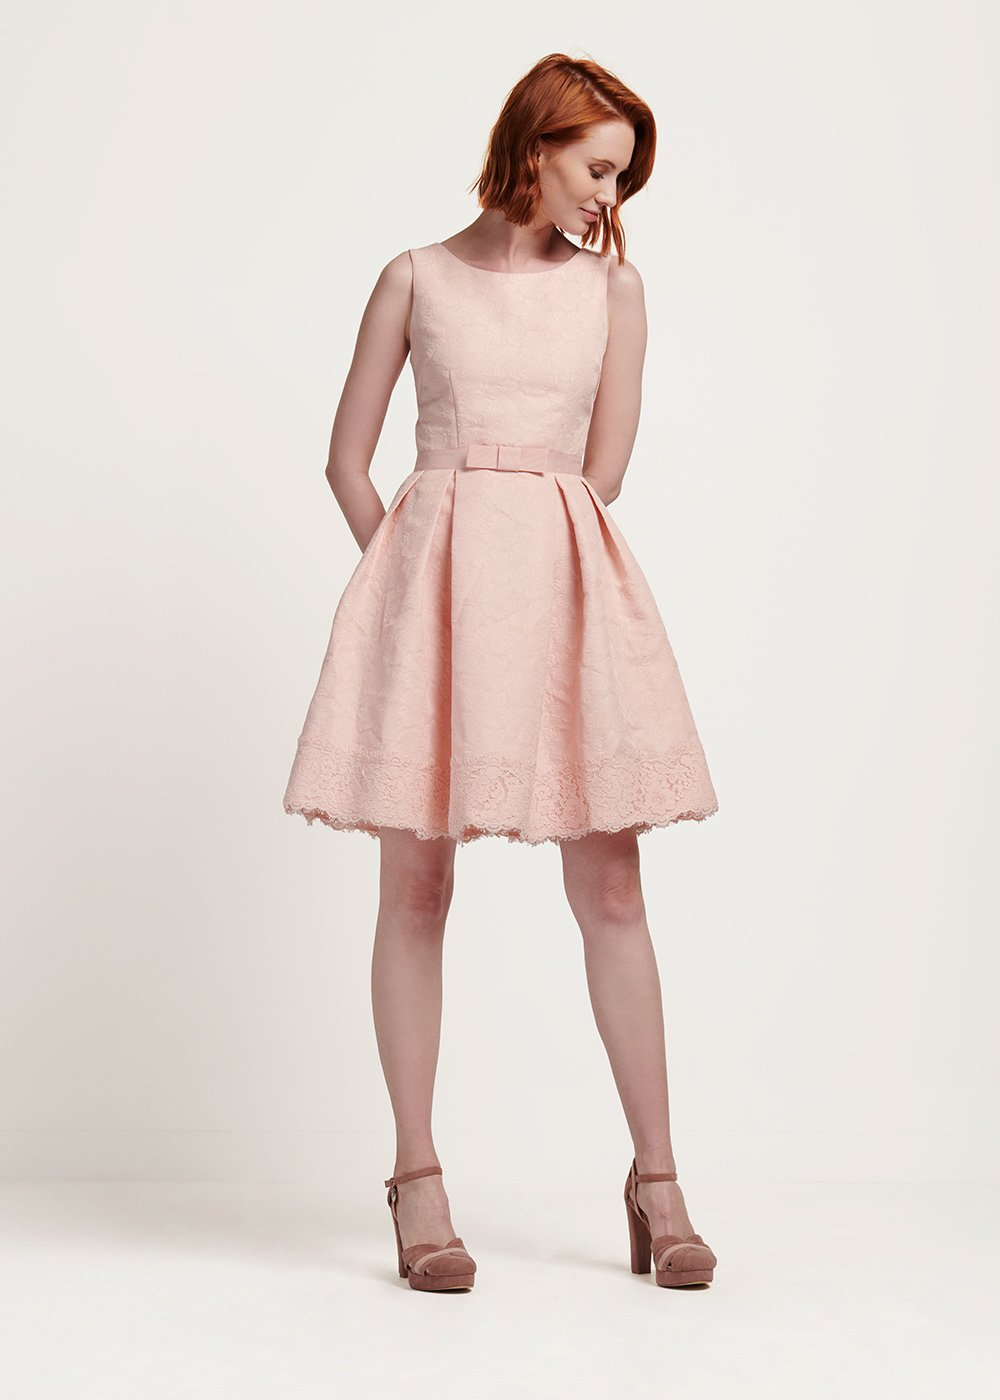 Alex lace dress with waist band - Pink - Woman